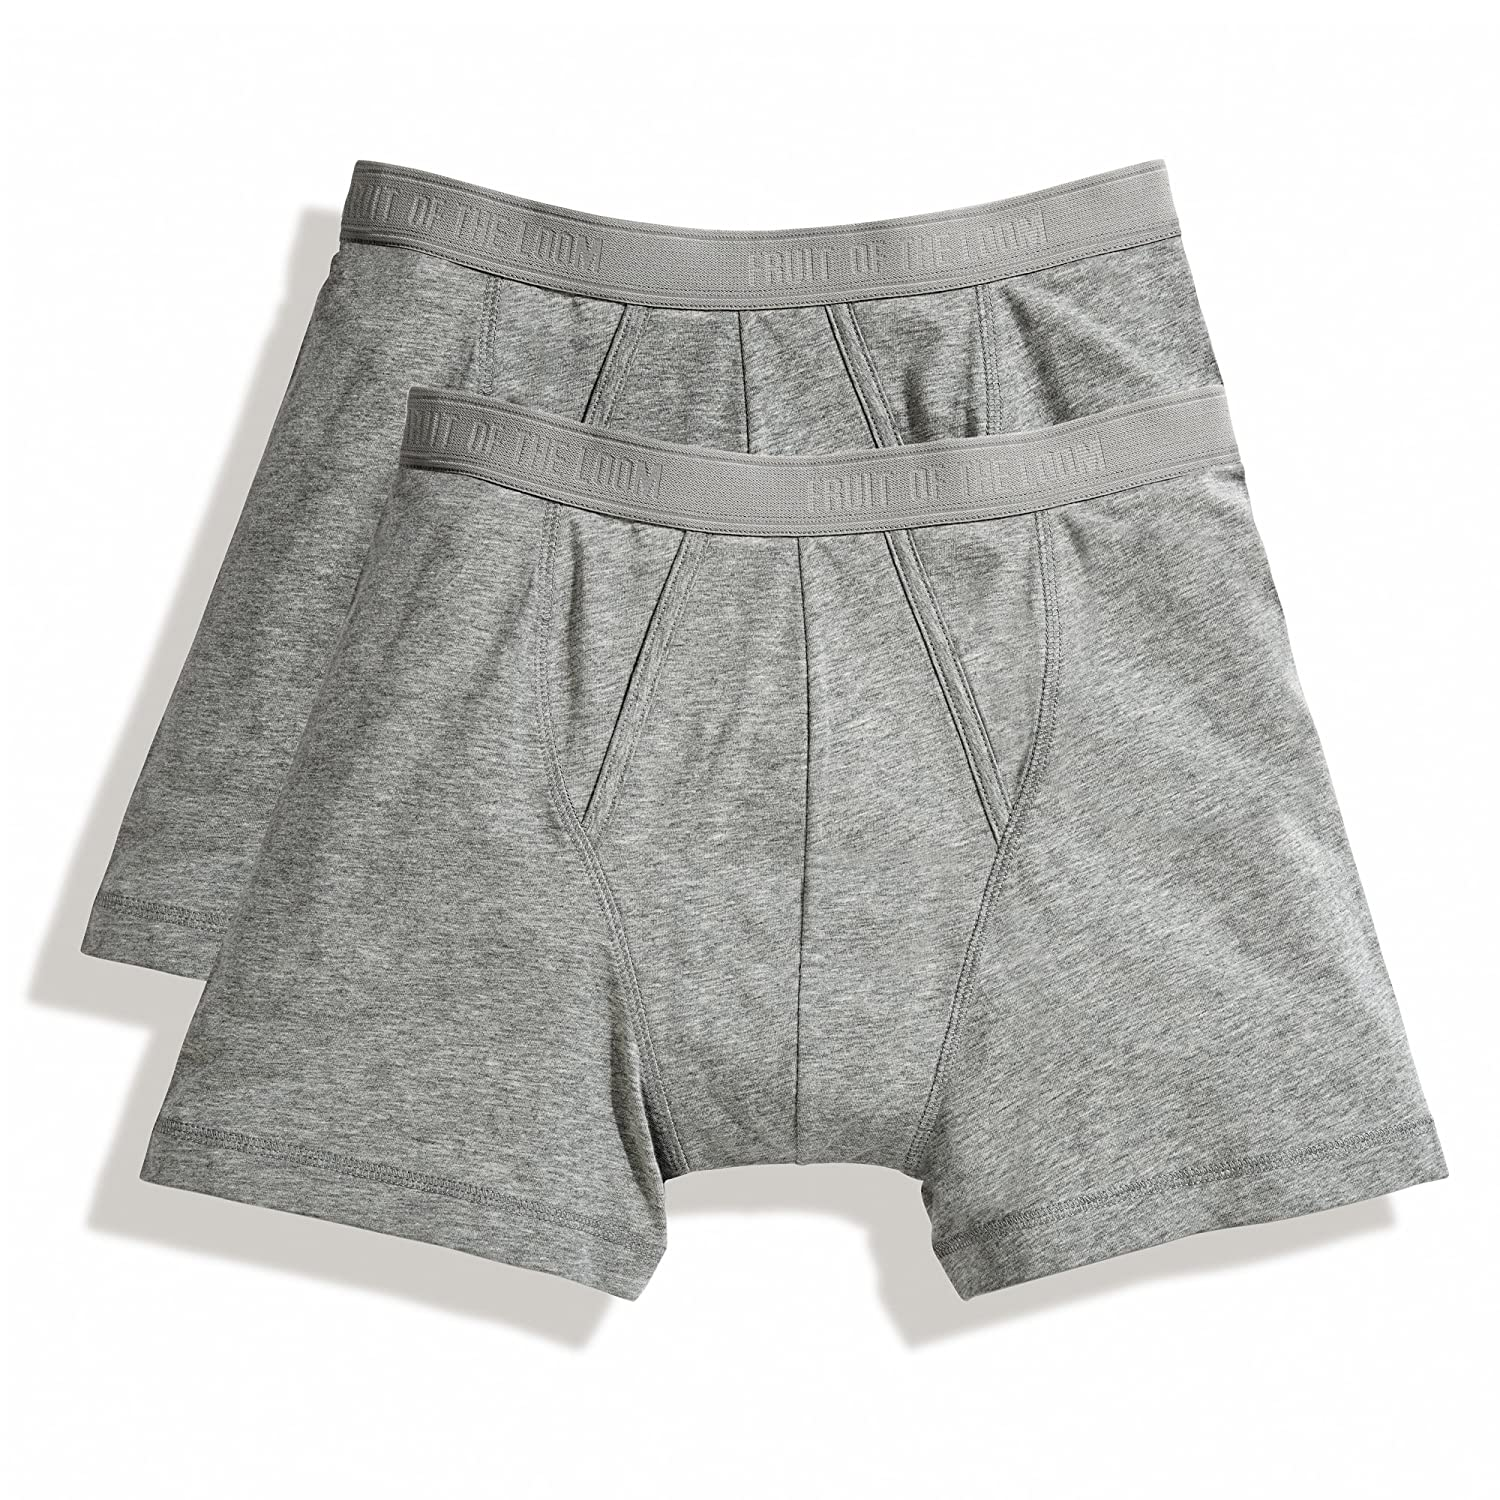 Fruit of the Loom Men's Boxer Classic Underpants Pack of 2 67-026-7